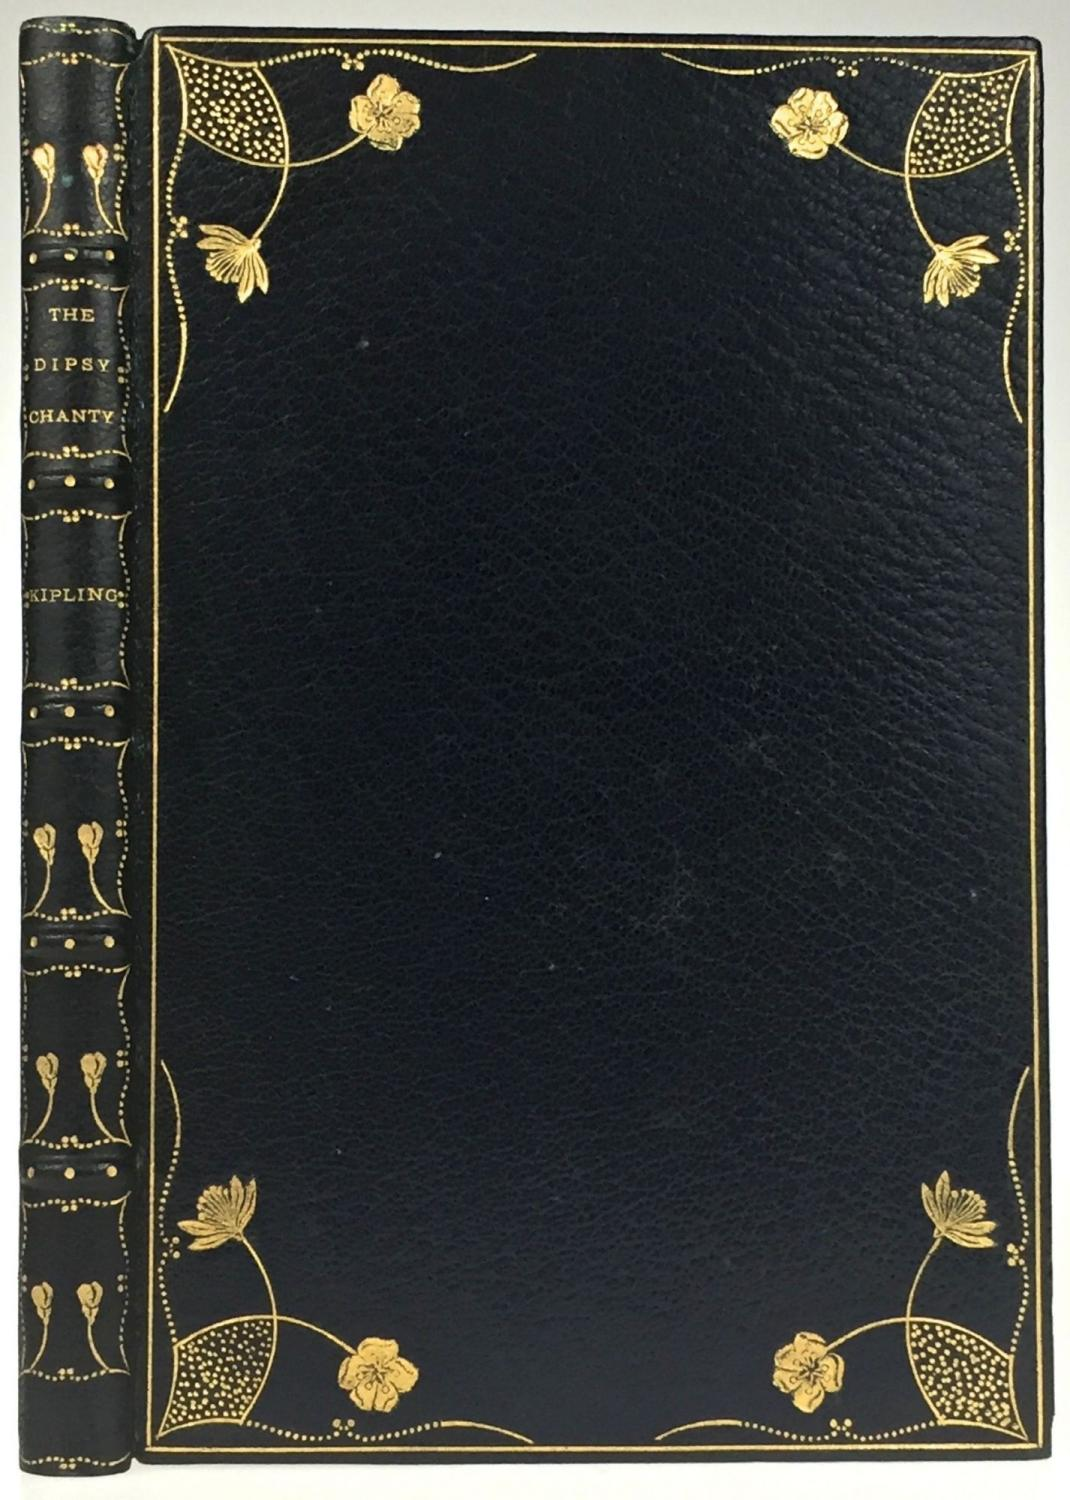 [Roycroft Press- Bound by Pfister of New York) The Dipsy Chanty Kipling, Rudyard Beautifully bound by Pfister, an accomplished turn-on-the-century bookbinder located in New York City ca. 1890-1910, in full dark blue crushed morocco